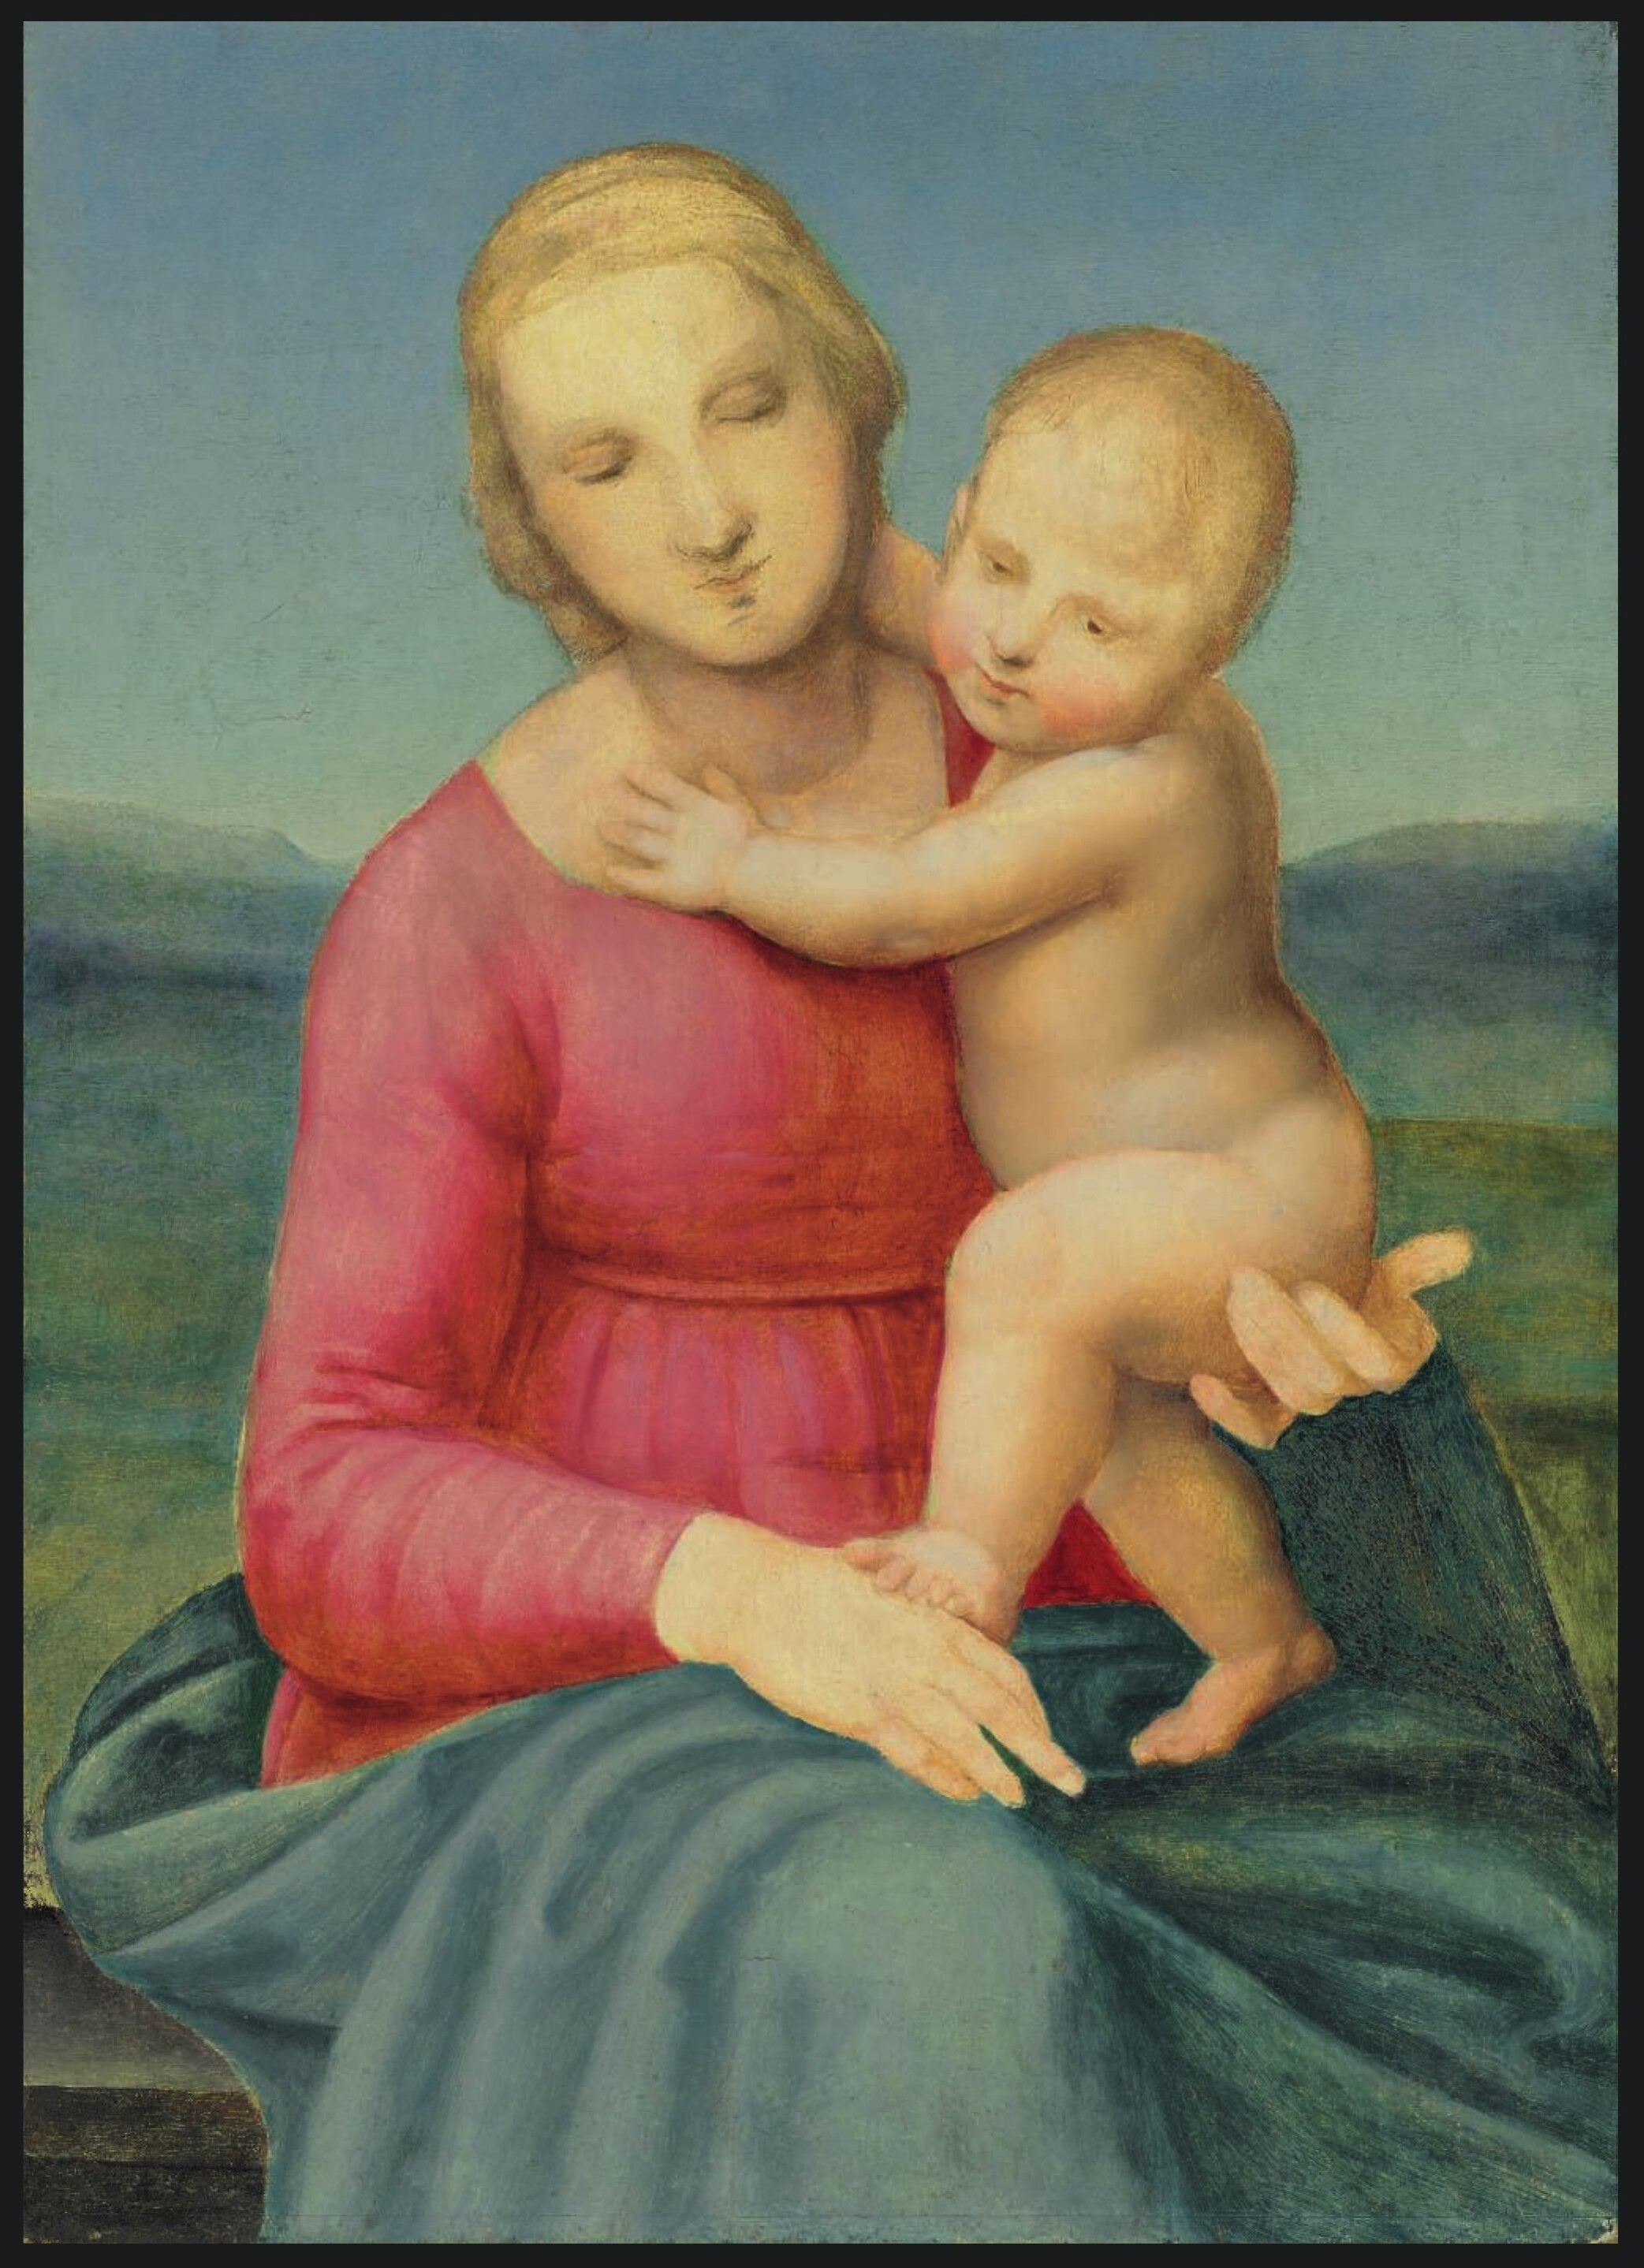 Attributed to Raphaël or a close associate The Peruzzi Madonna: The Madonna and Child